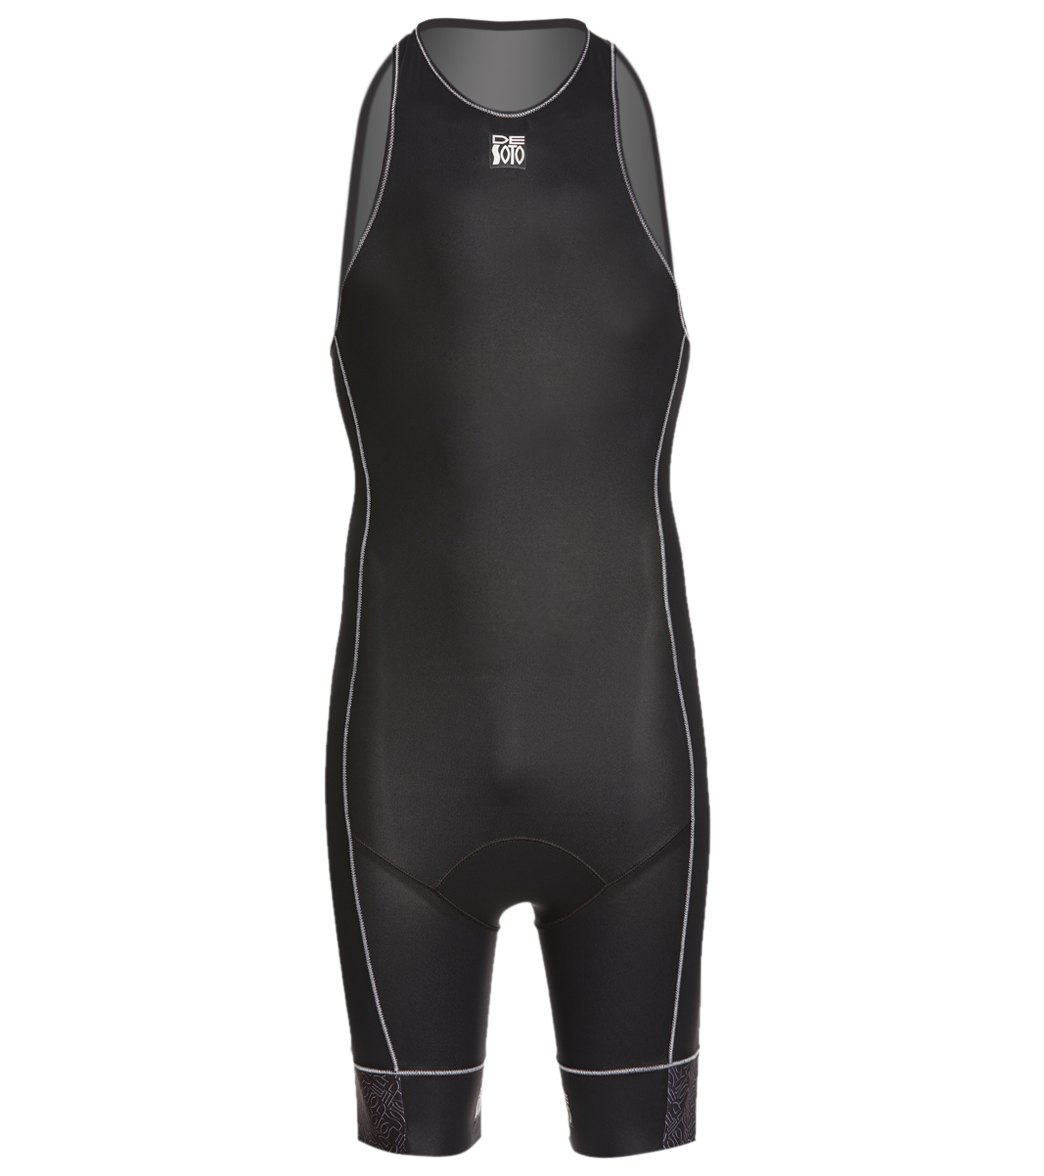 DeSoto Men s Liftfoil 3 Swim Skin at SwimOutlet.com - Free Shipping 6b996ee7d